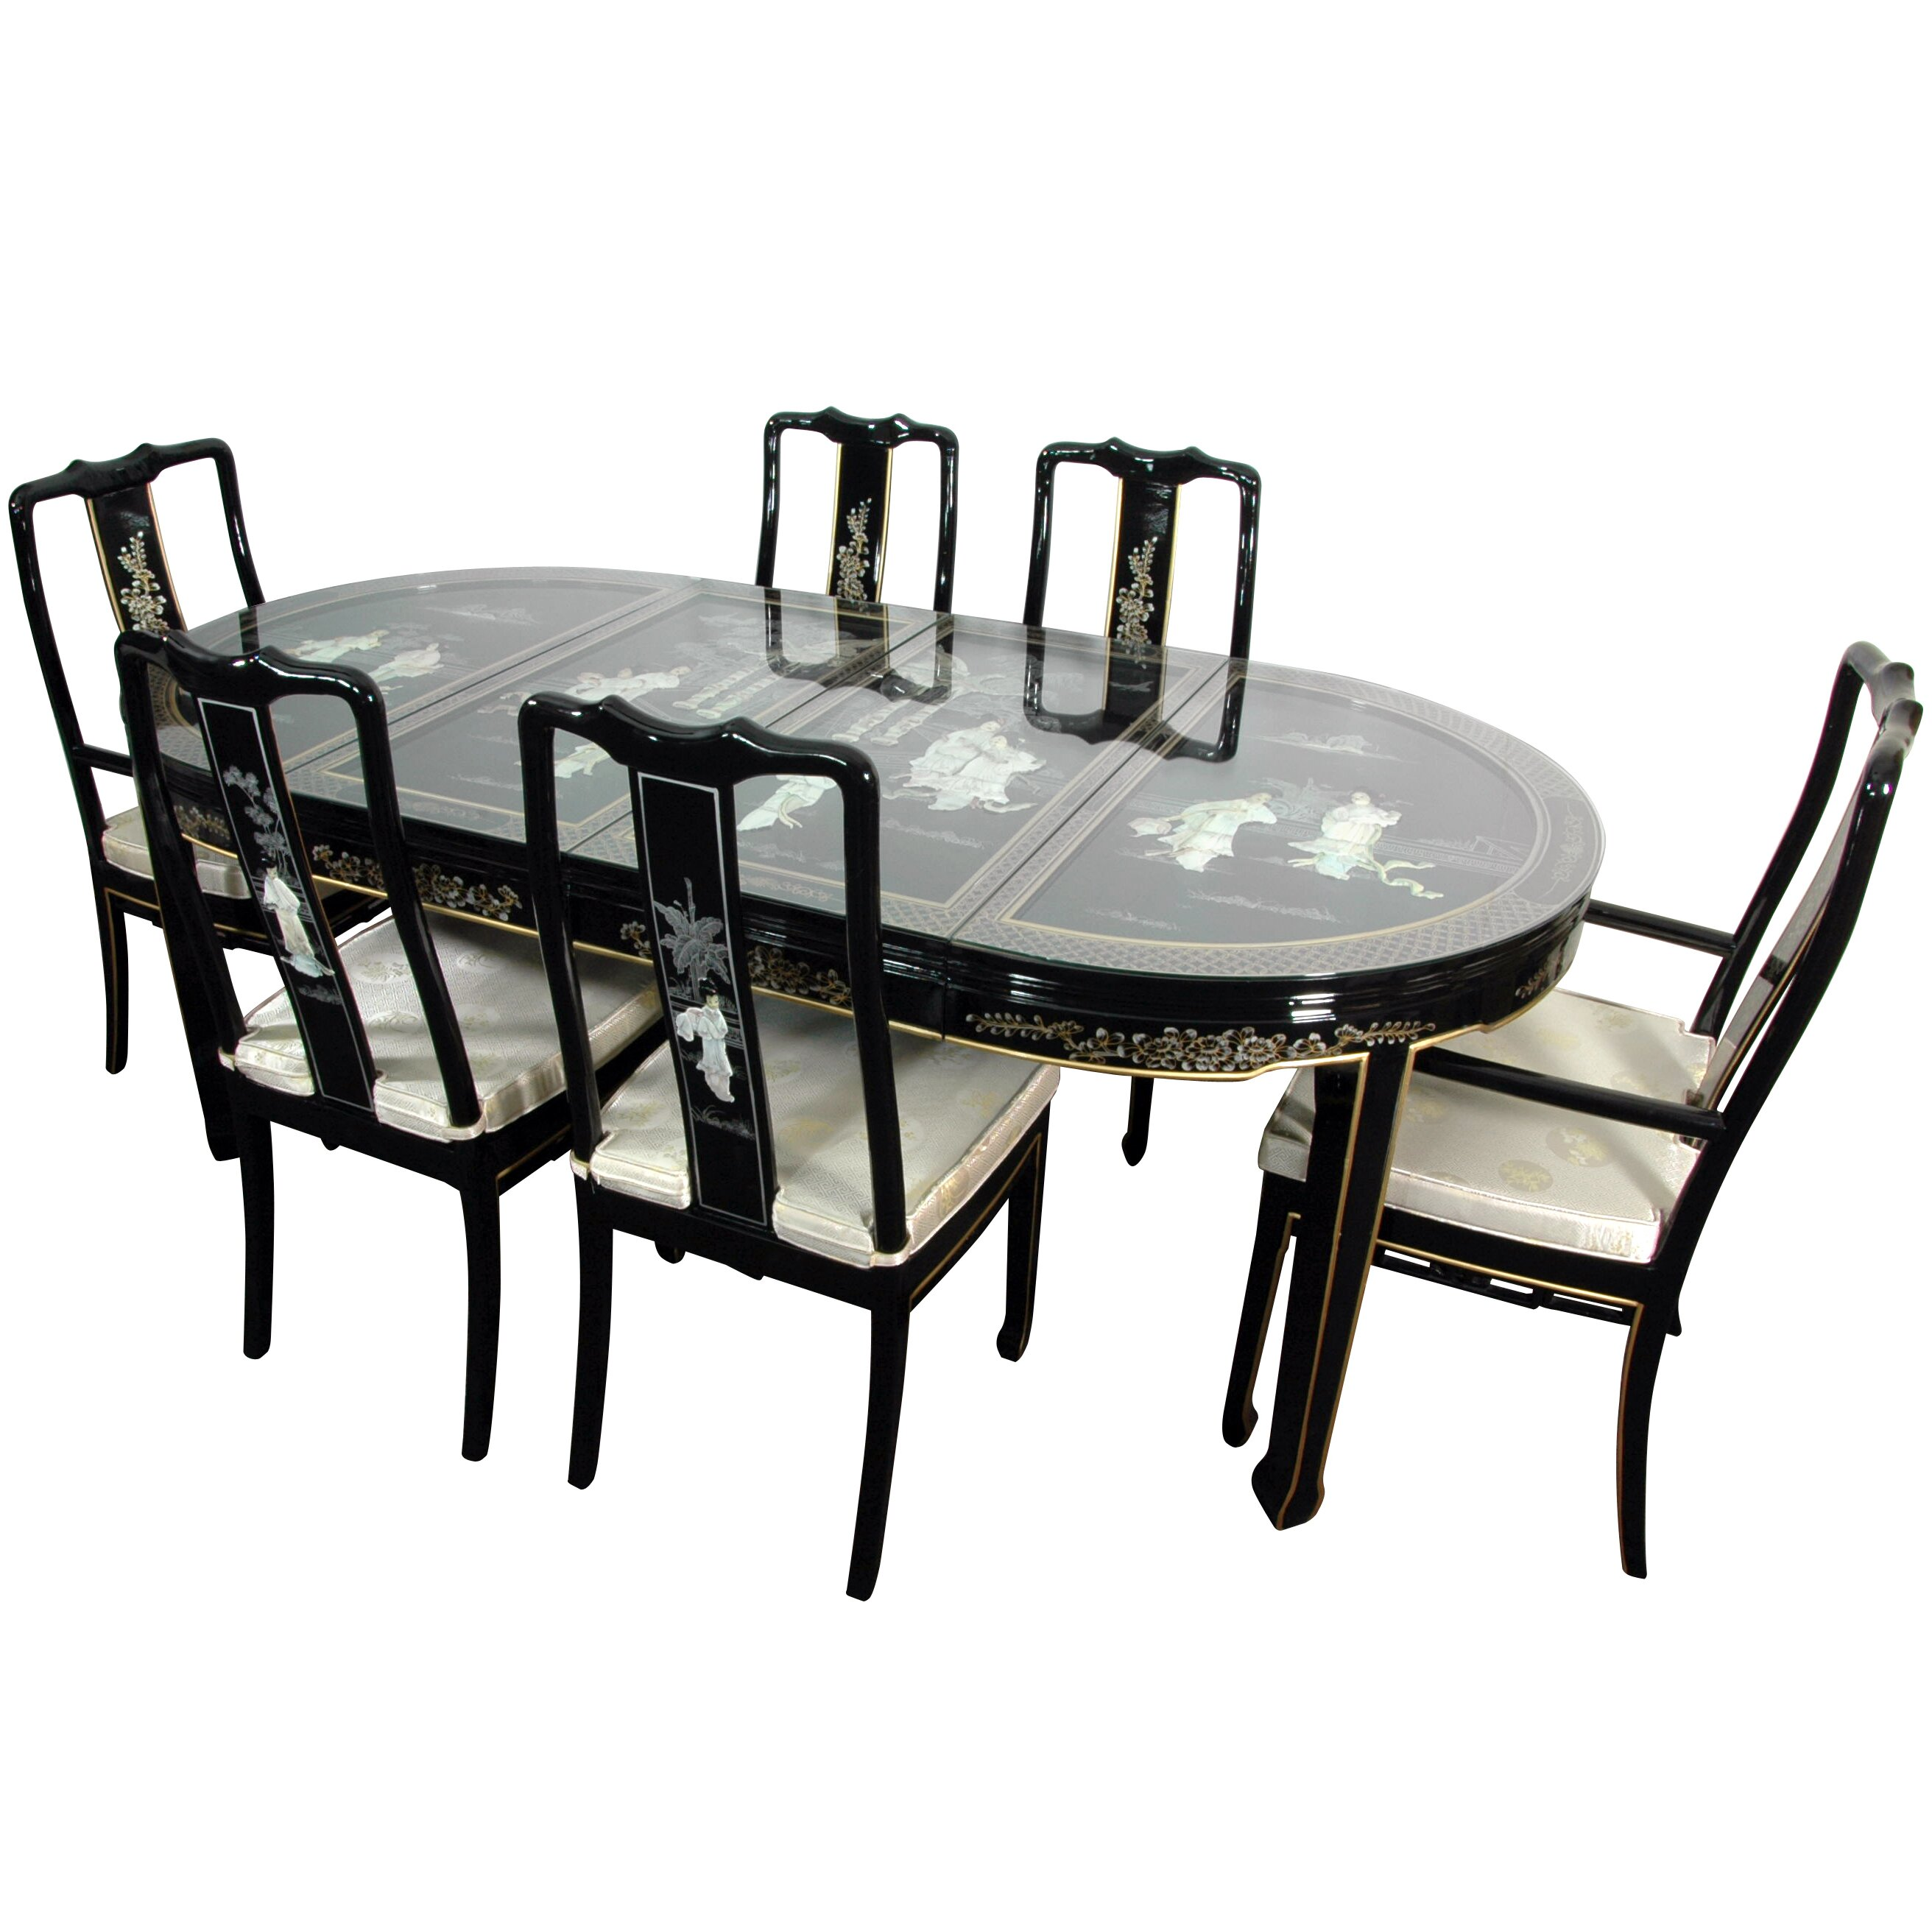 Lacquer 7 piece dining set wayfair for 7 piece dining set